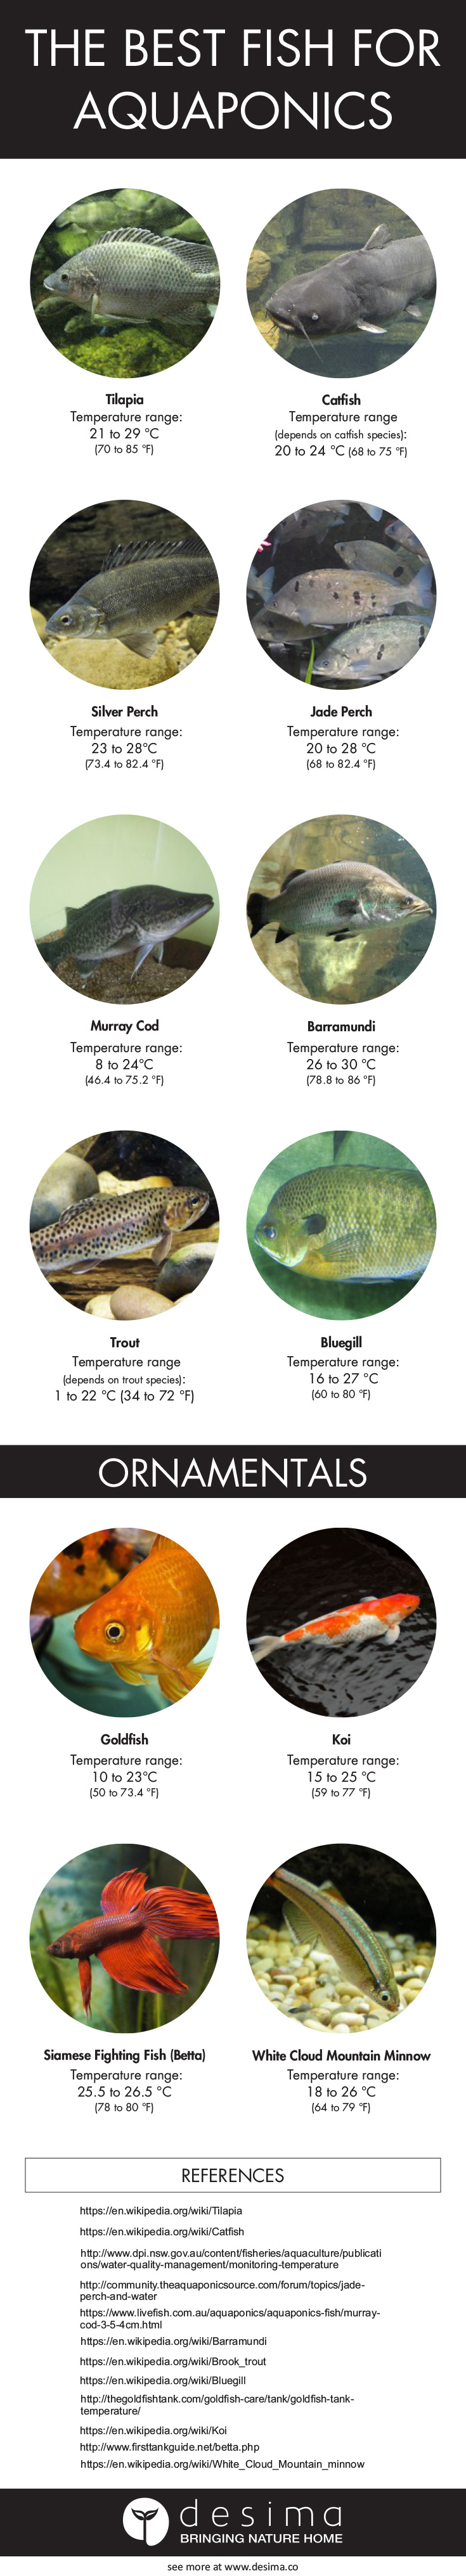 The Best Fish for Aquaponics (Infographic updated in 2017)